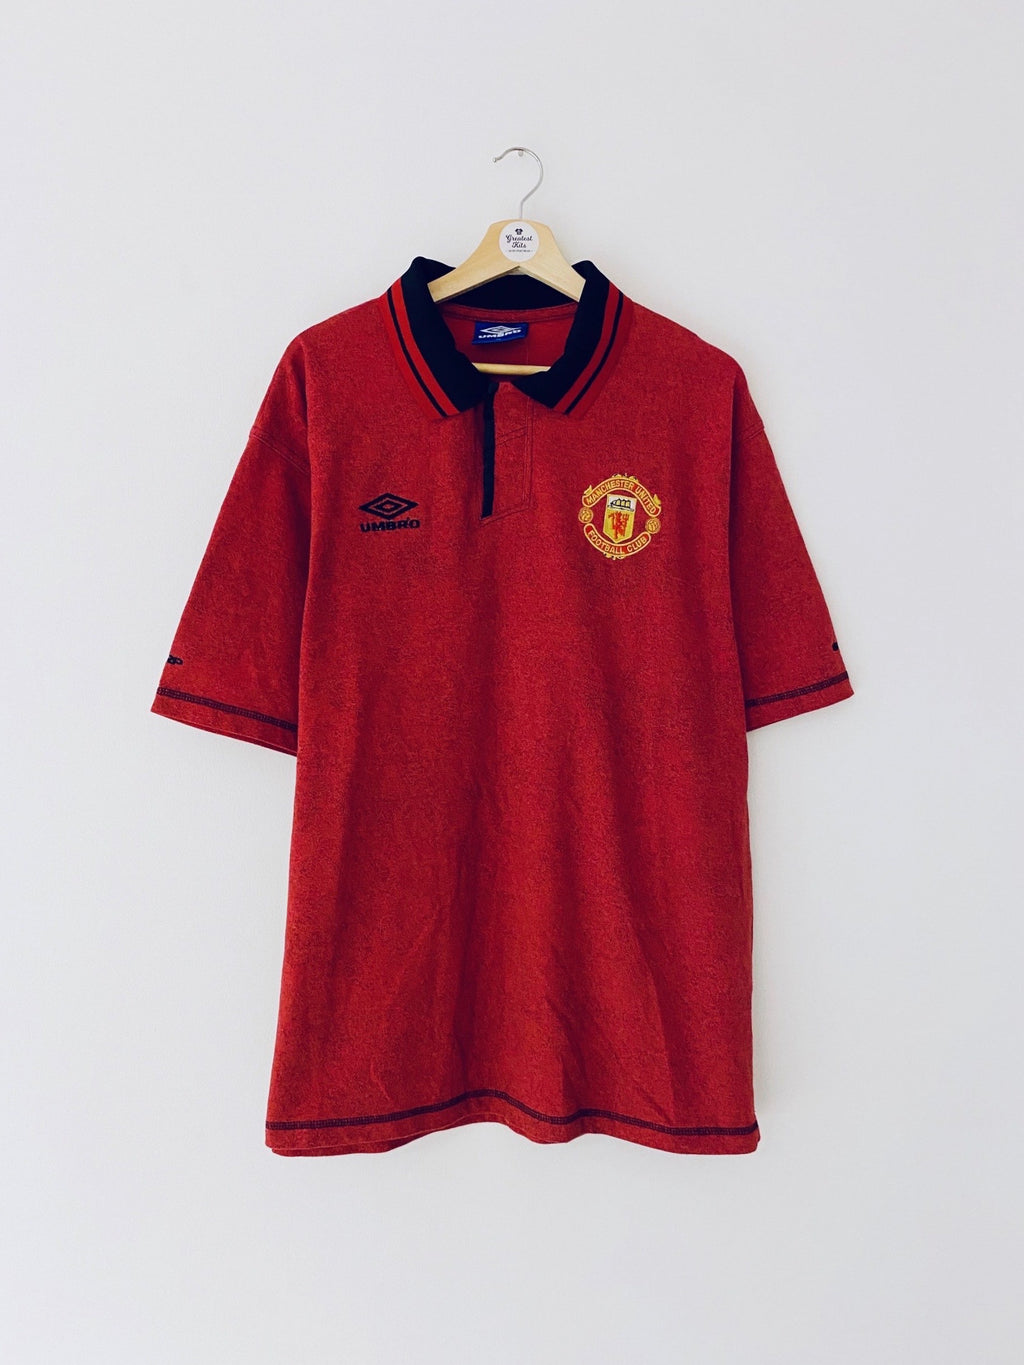 1998/99 Manchester United Polo Shirt (XL) 9.5/10